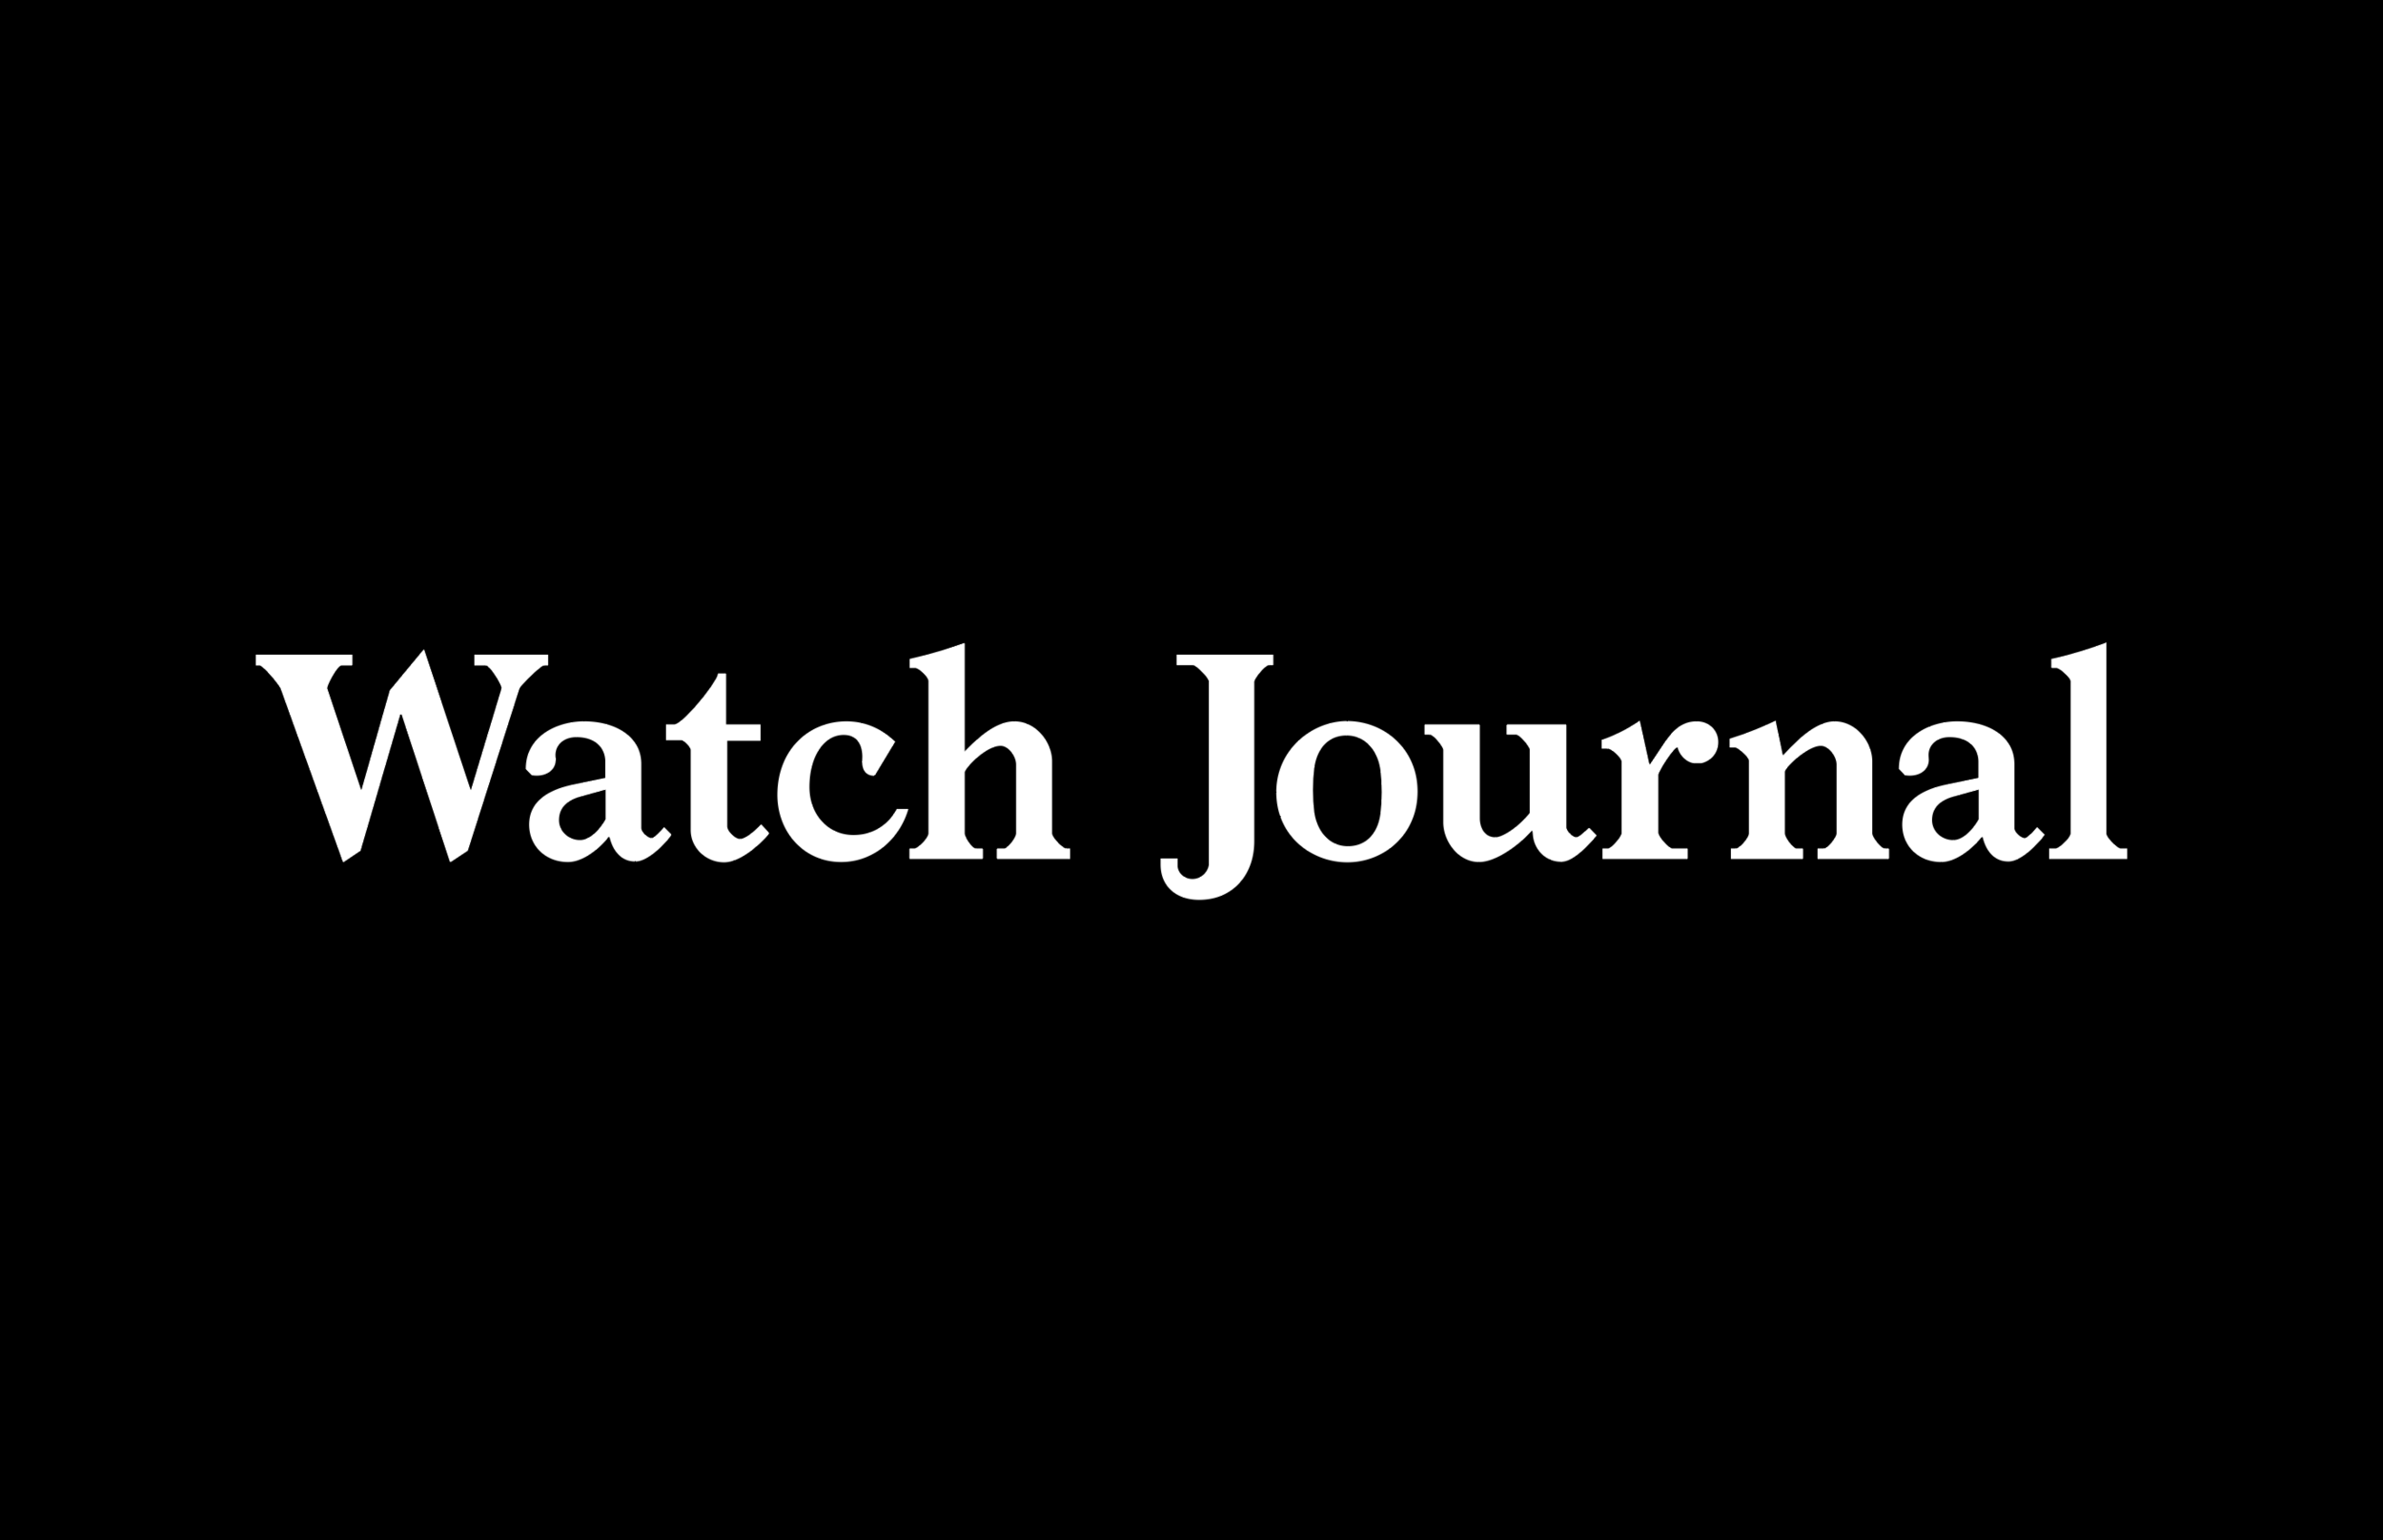 WATCH JOURNAL MAGAZINE - Pairing a love of fine watches and an appreciation for the best in style, travel, and sports, Watch Journal is the category-leading luxury timepiece publication.